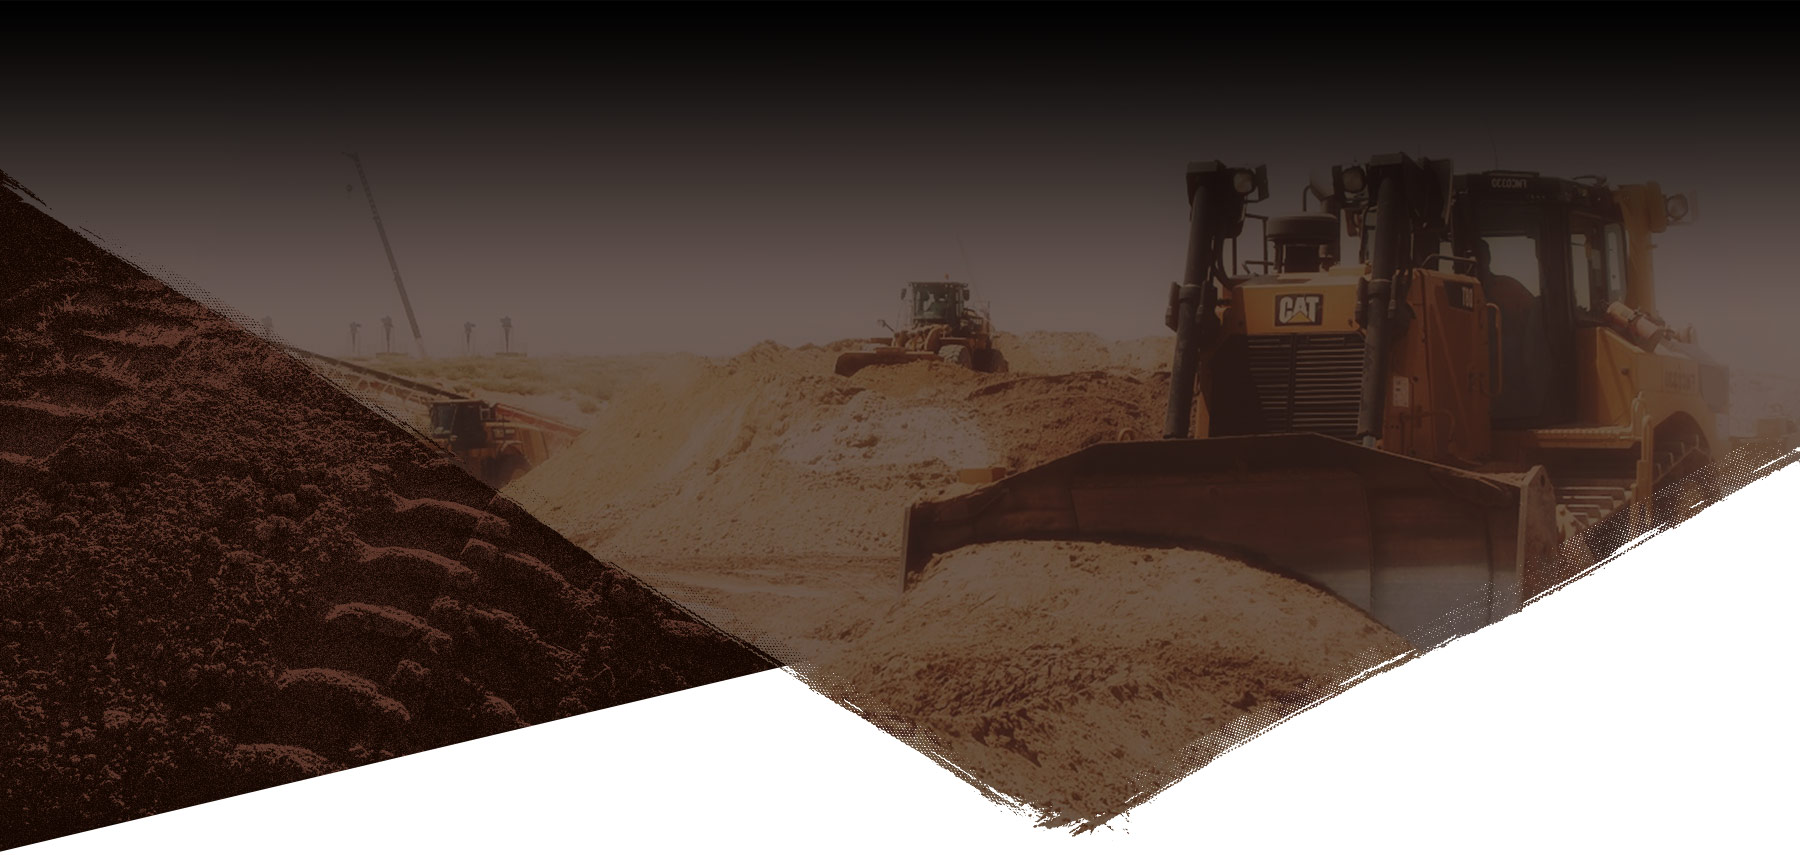 Photo of Skid Steer and dirt